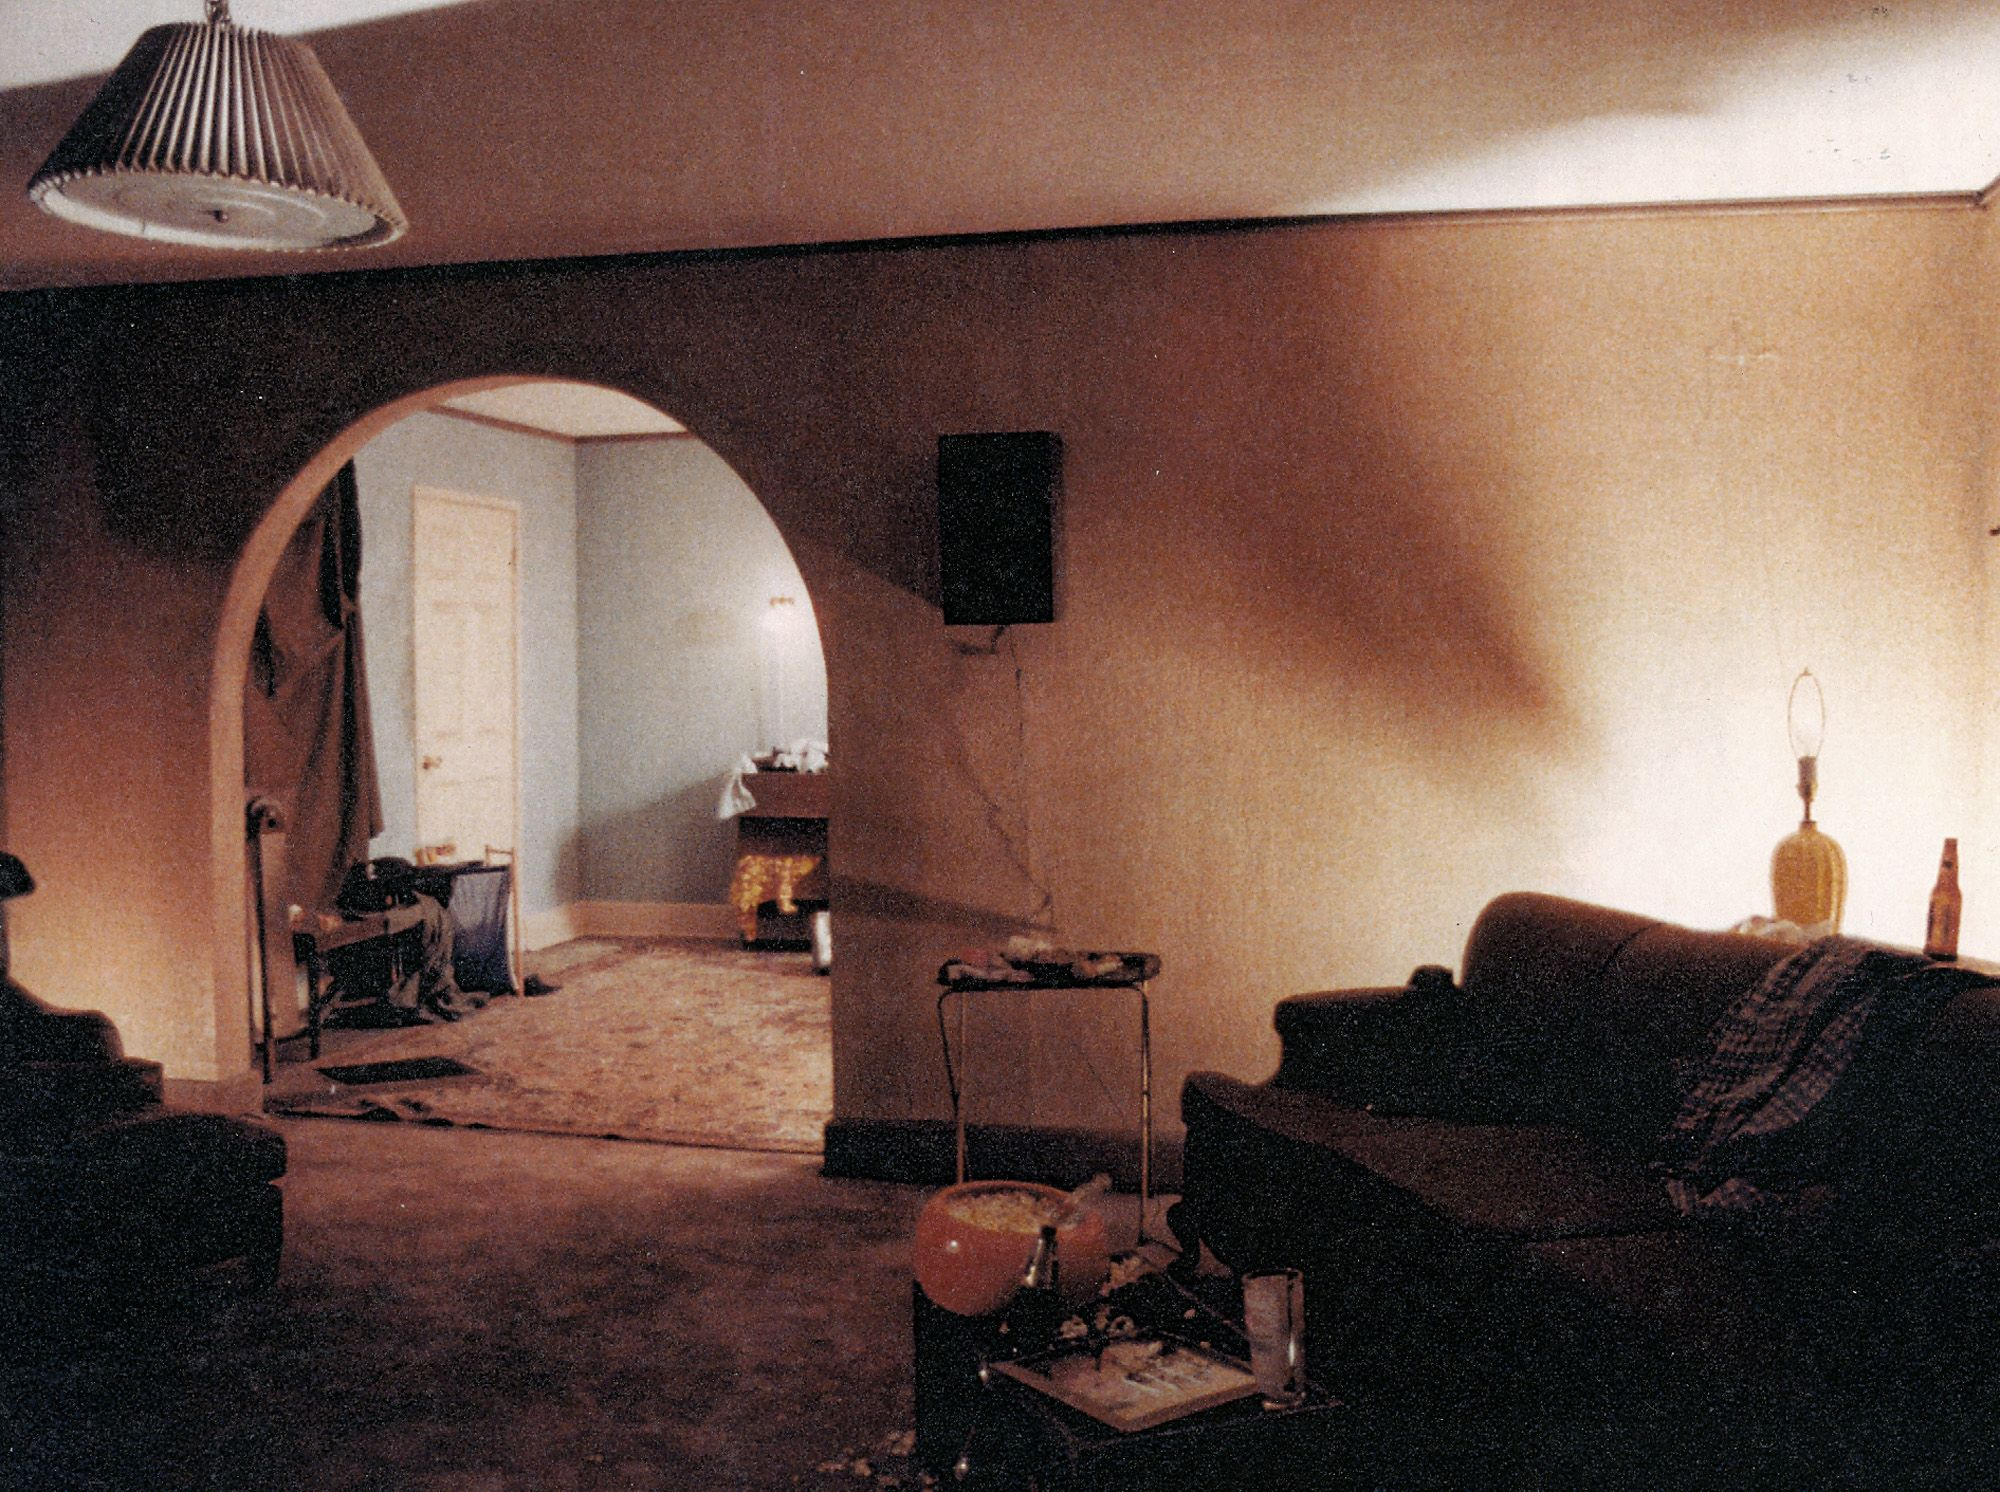 Room - Twin Peaks production set by Richard Hoover